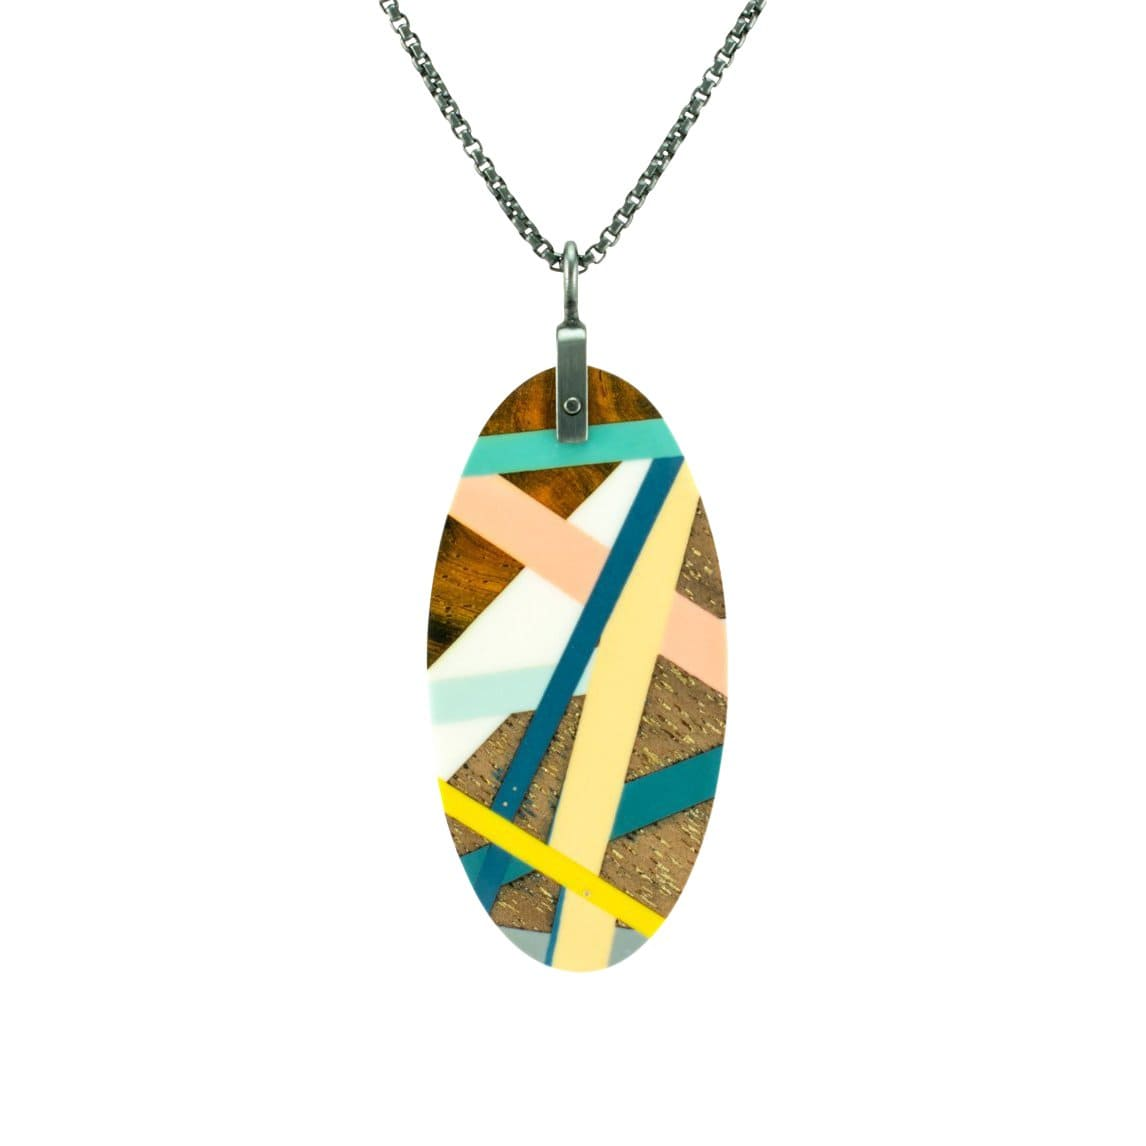 Laura Jaklitsch Jewelry Necklaces Cocobolo and Walnut Wood with Teal/Pink/Blue Inlay Necklace